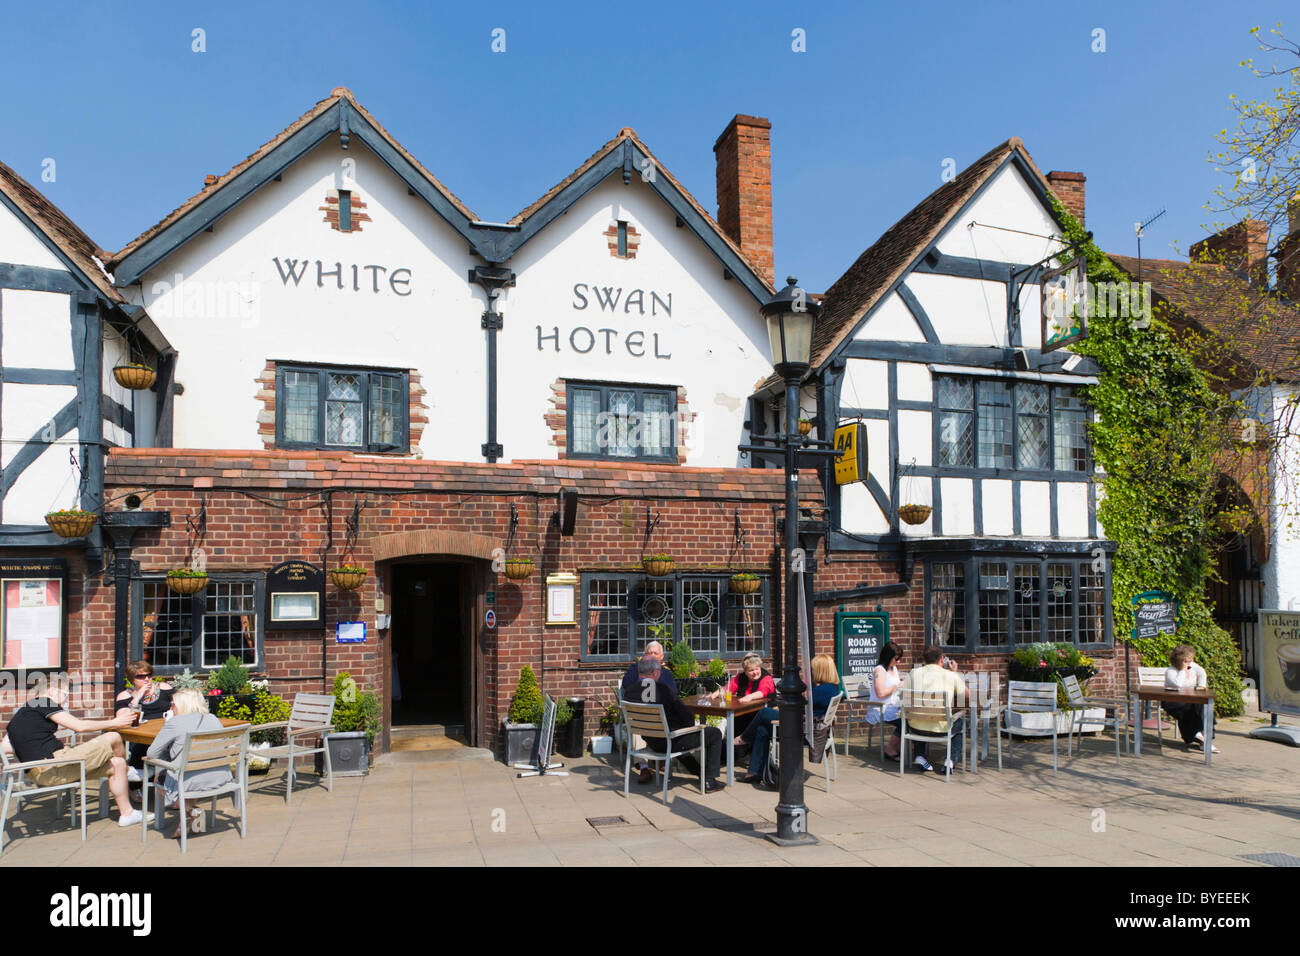 The White Swan Hotel, Rother Street, Stratford-upon-Avon, Warwickshire, England, United Kingdom, Europe - Stock Image